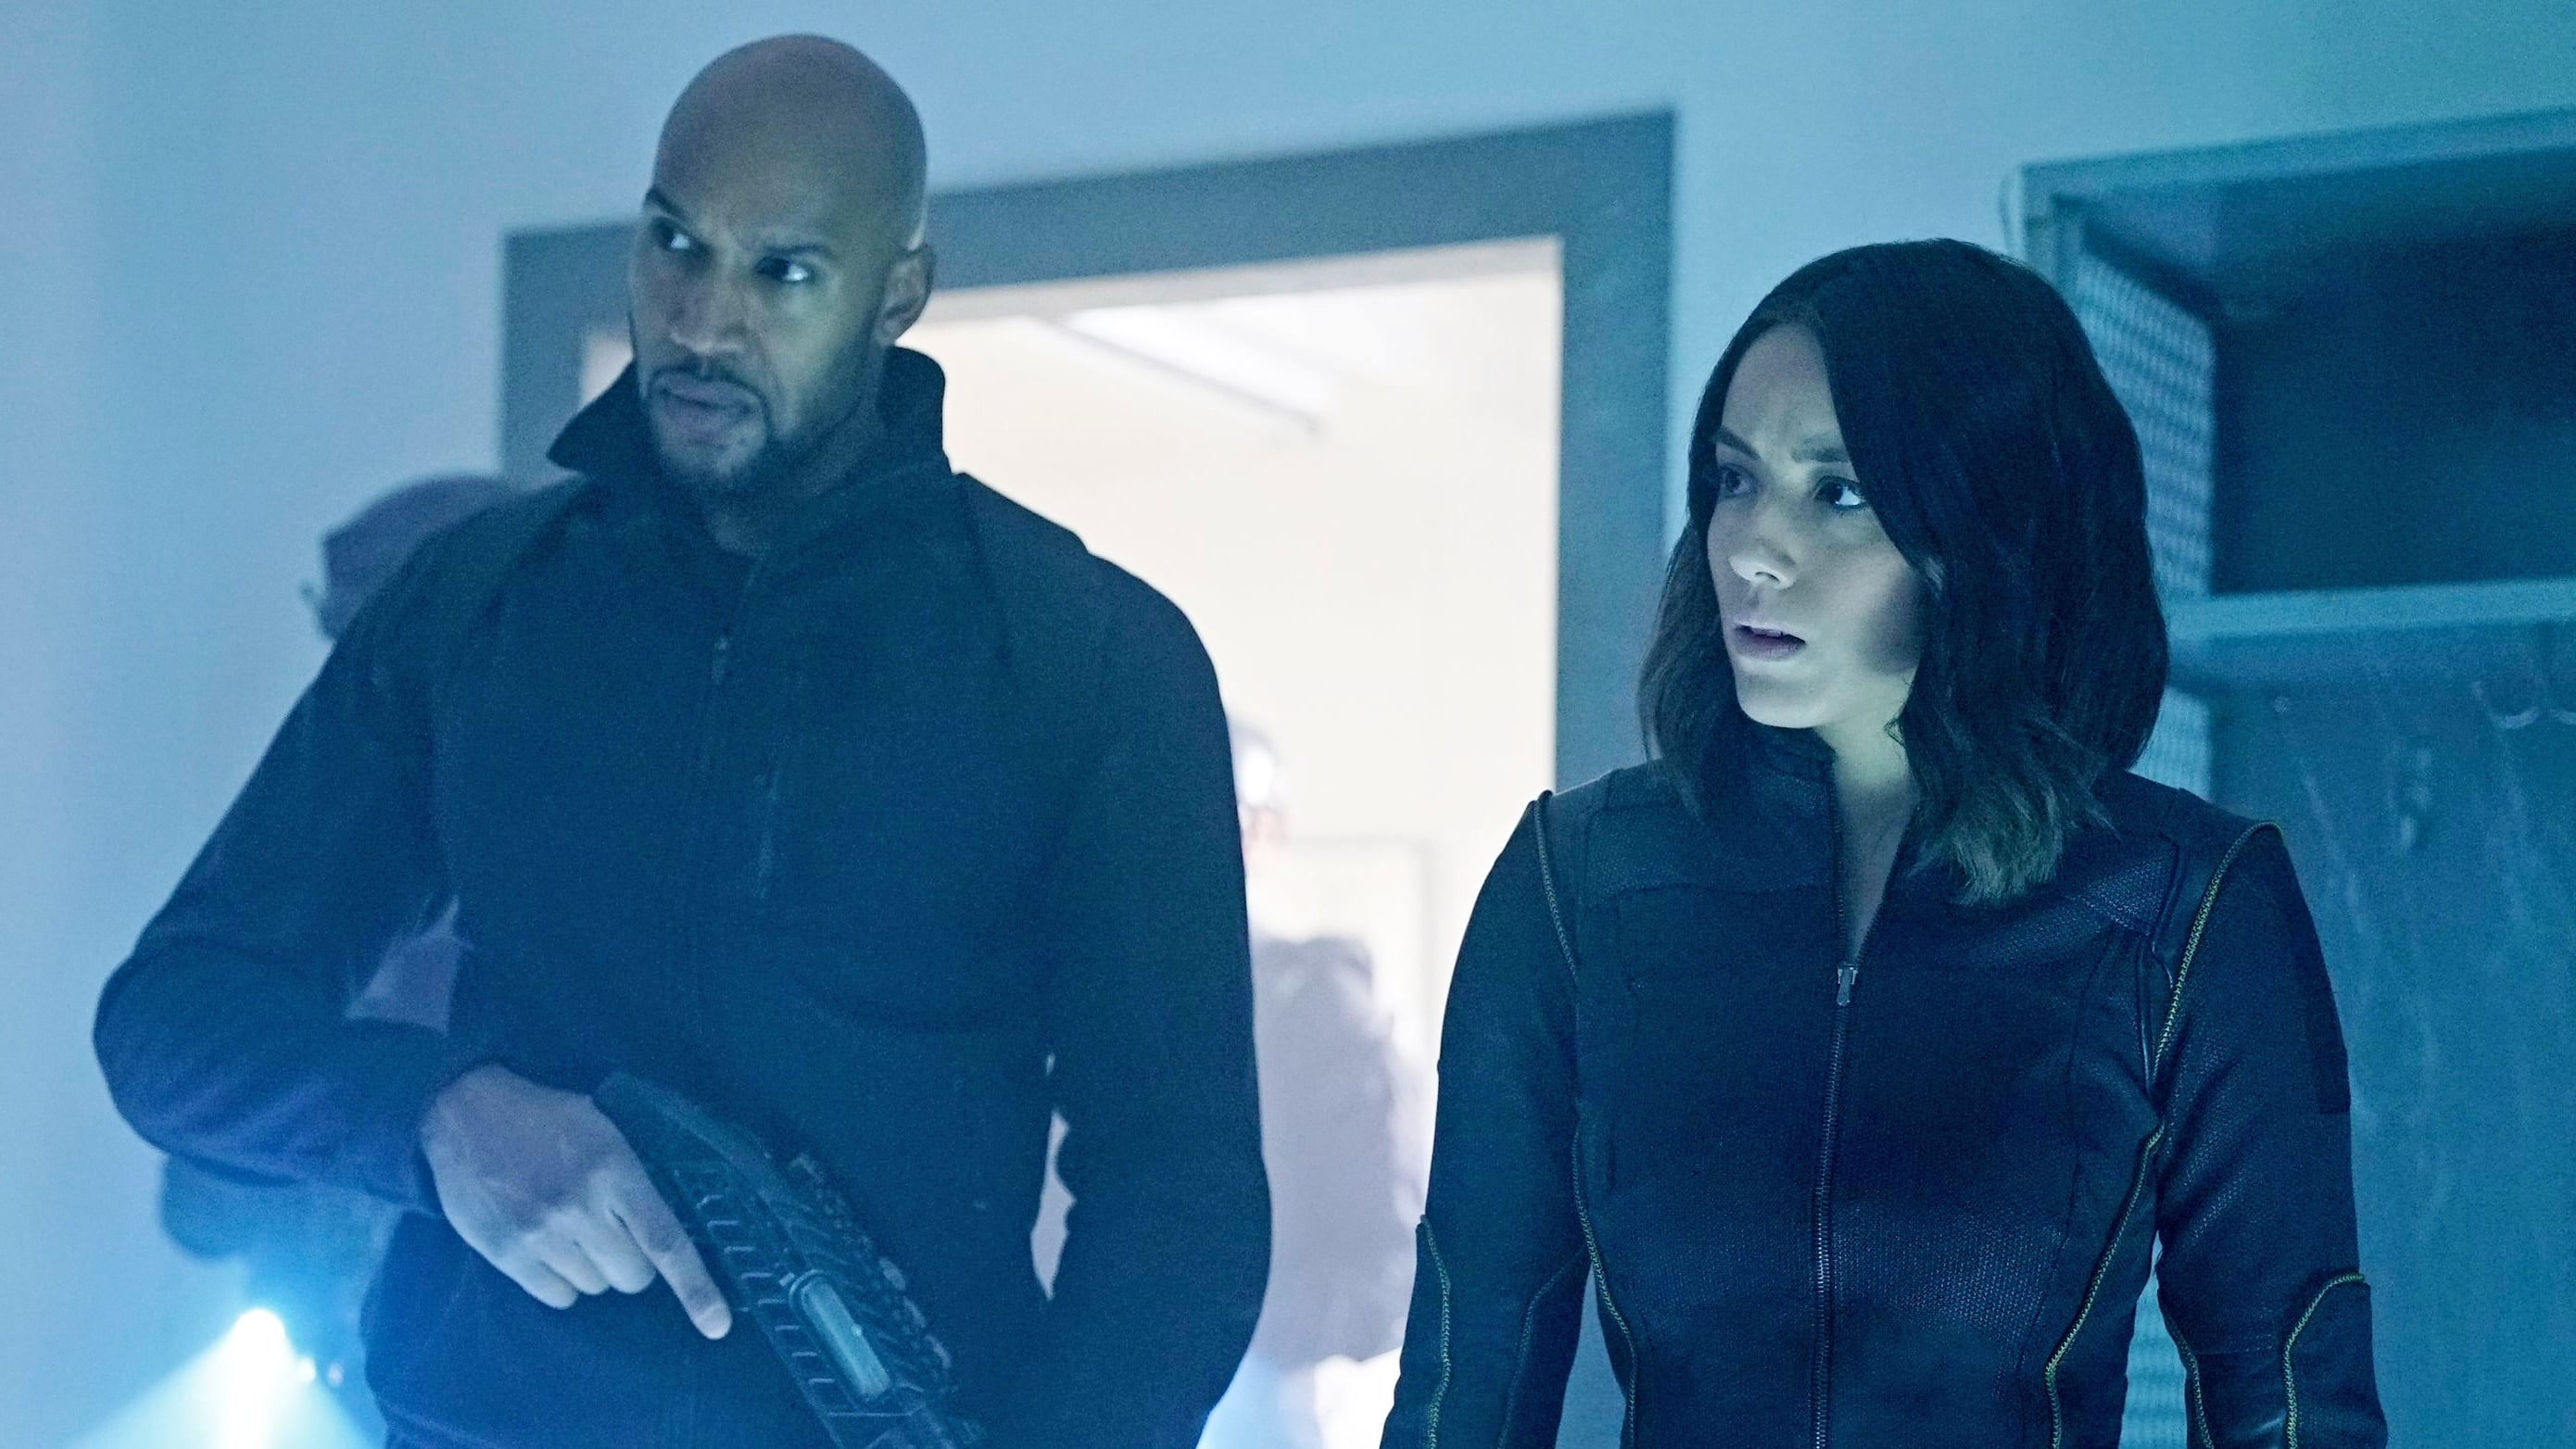 Marvel's Agents of S.H.I.E.L.D. Season 4 :Episode 14  The Man Behind the Shield